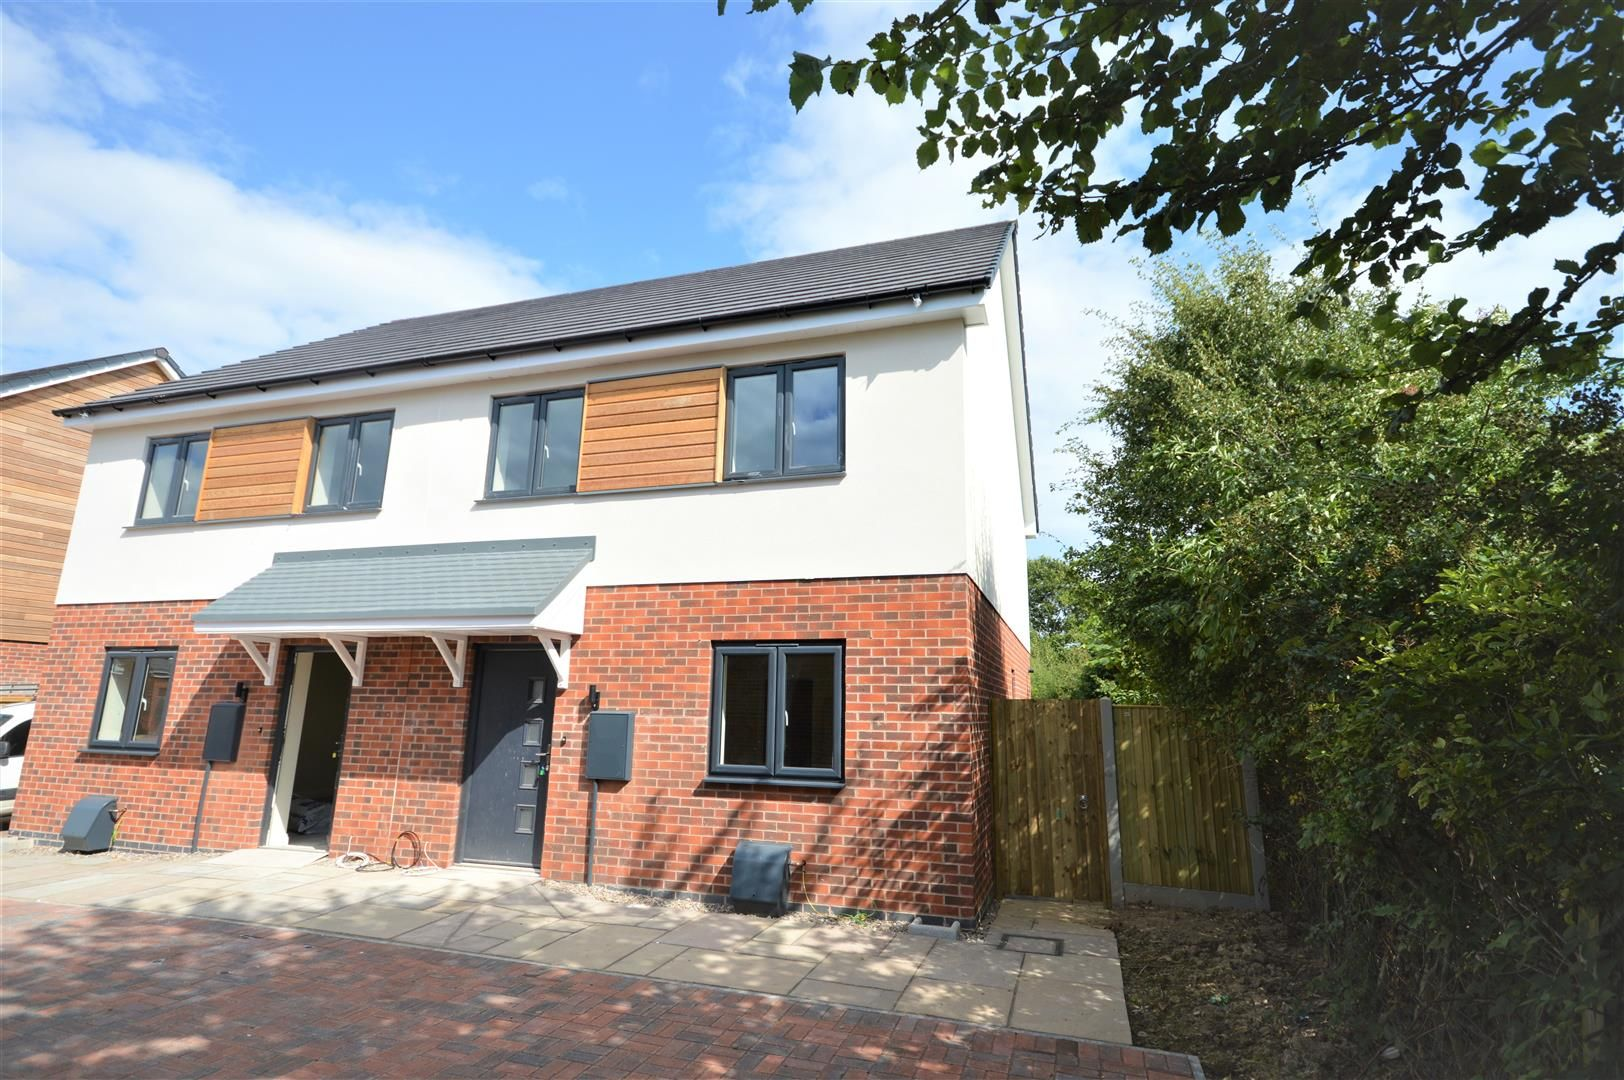 3 bed semi-detached for sale in Kingsland  - Property Image 1